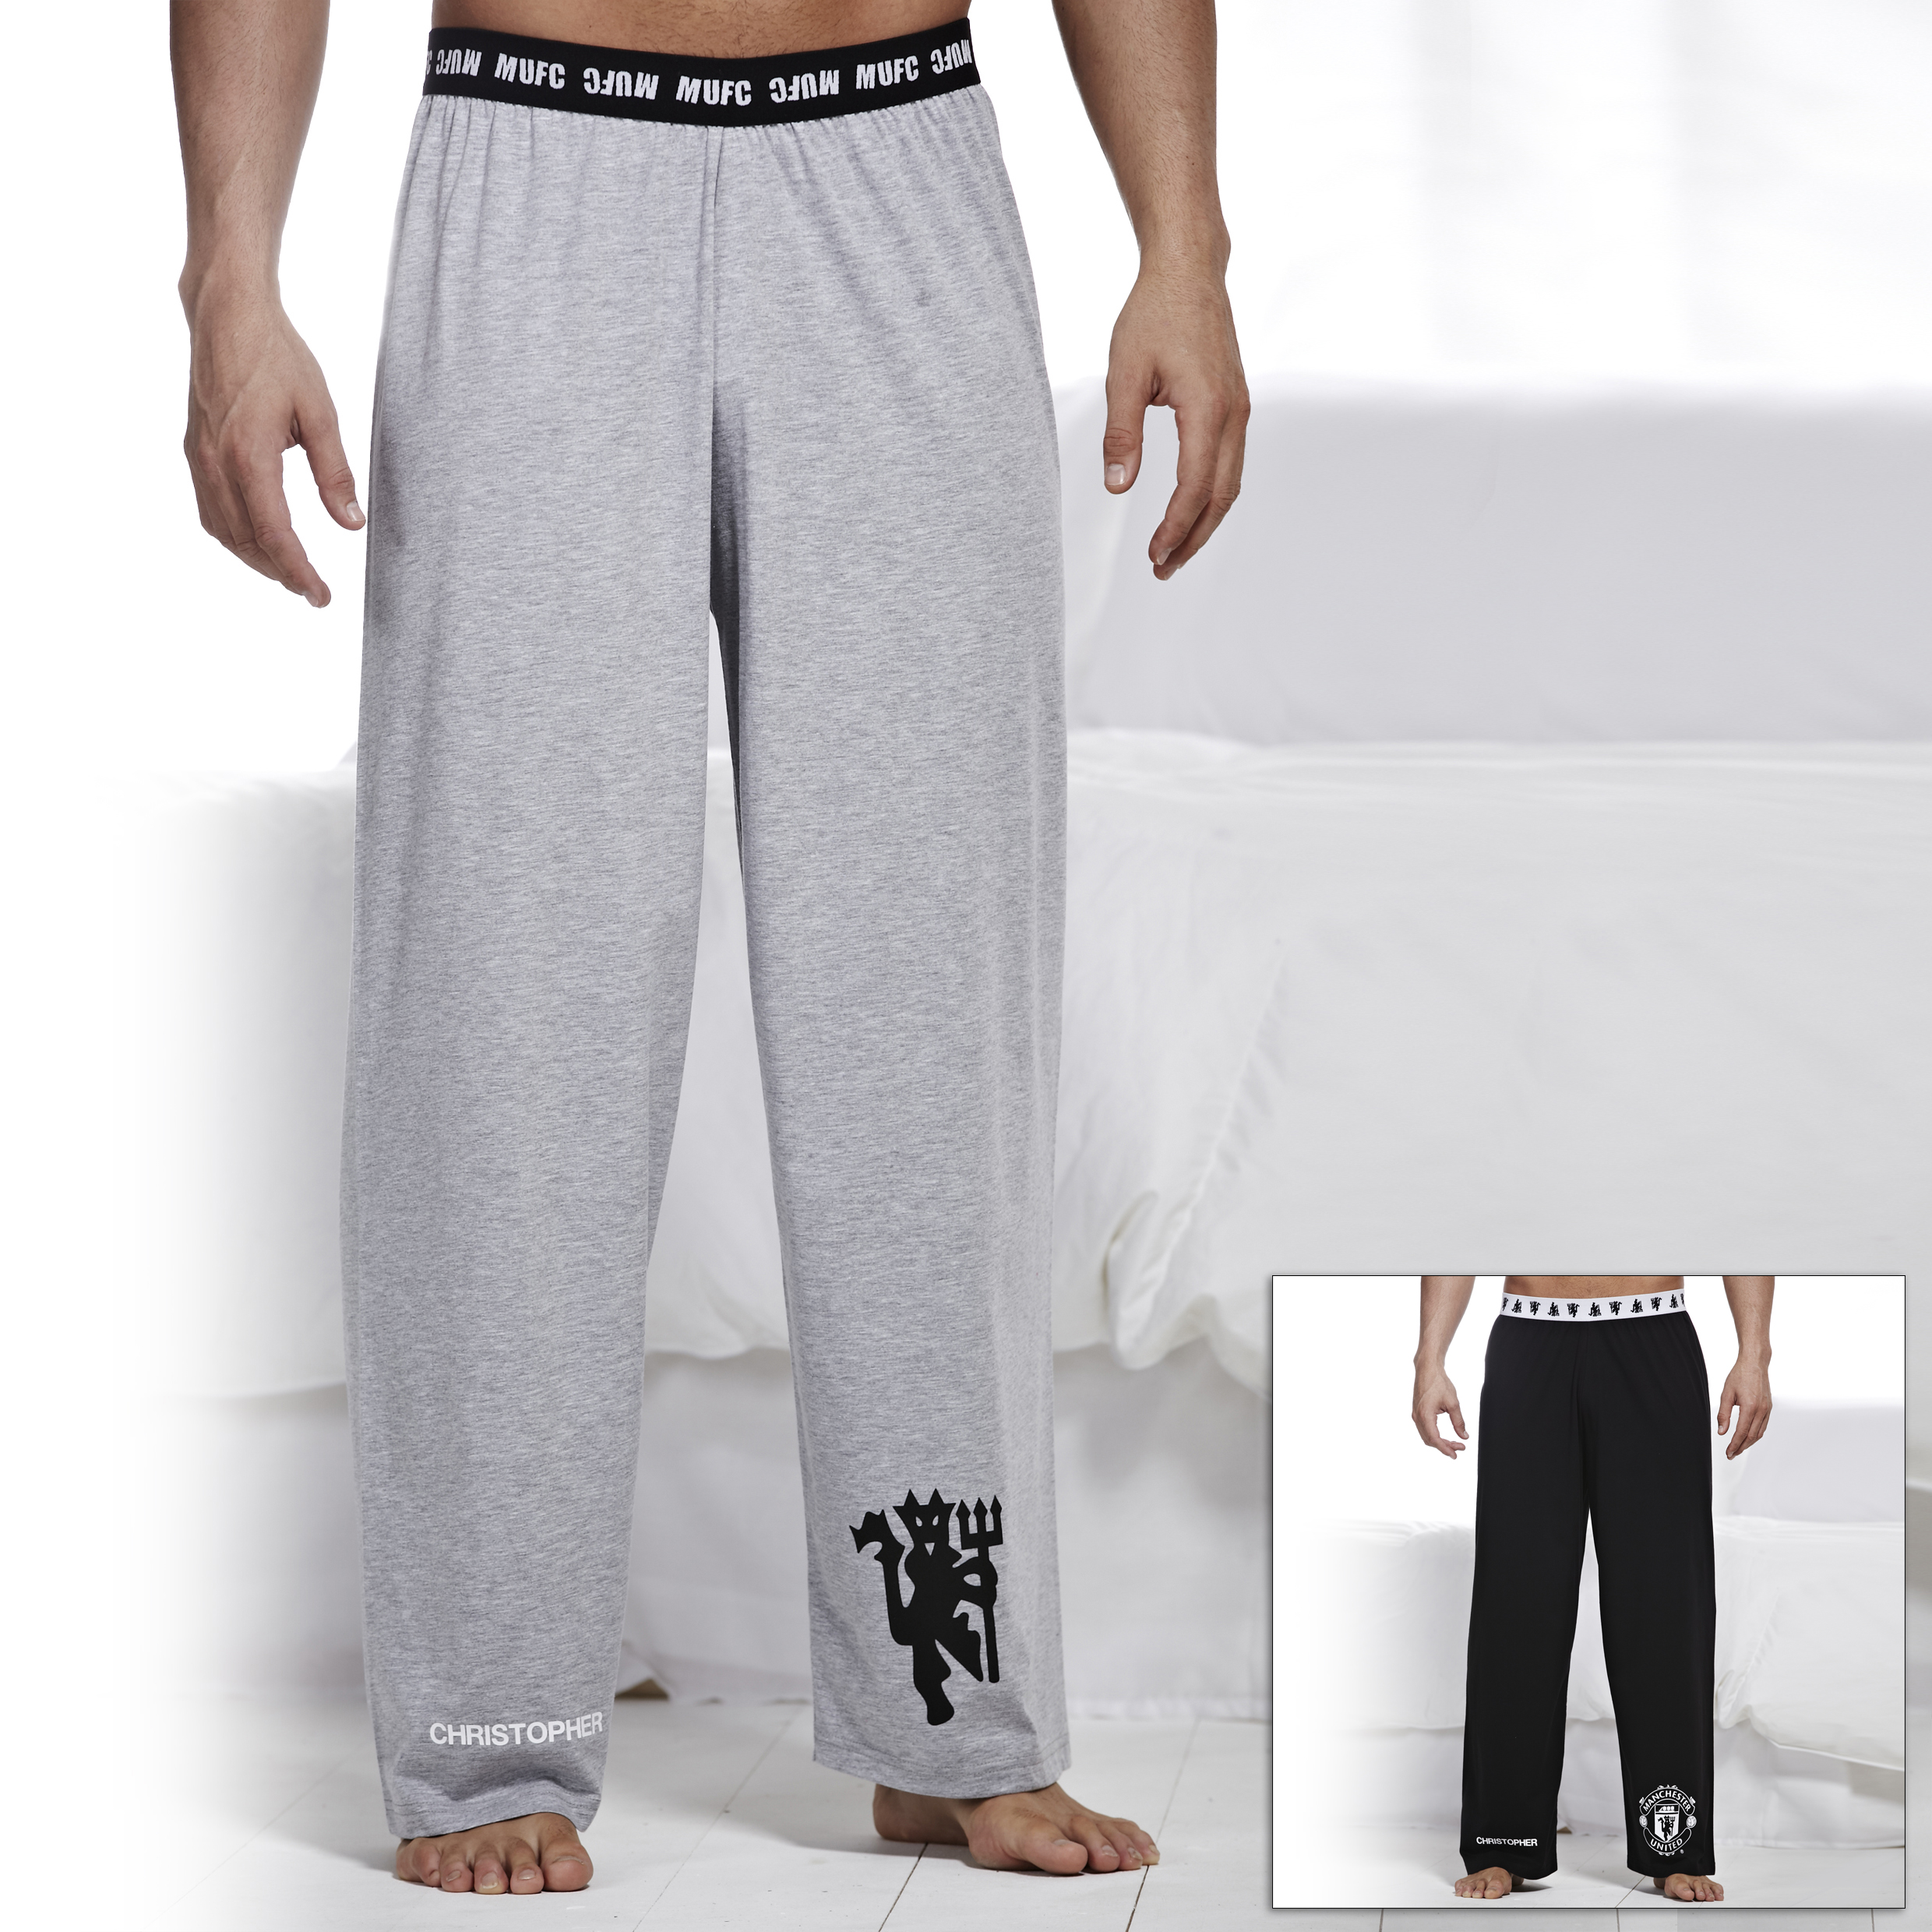 Manchester United 2 Pack Lounge Pants - Black/Grey - Mens